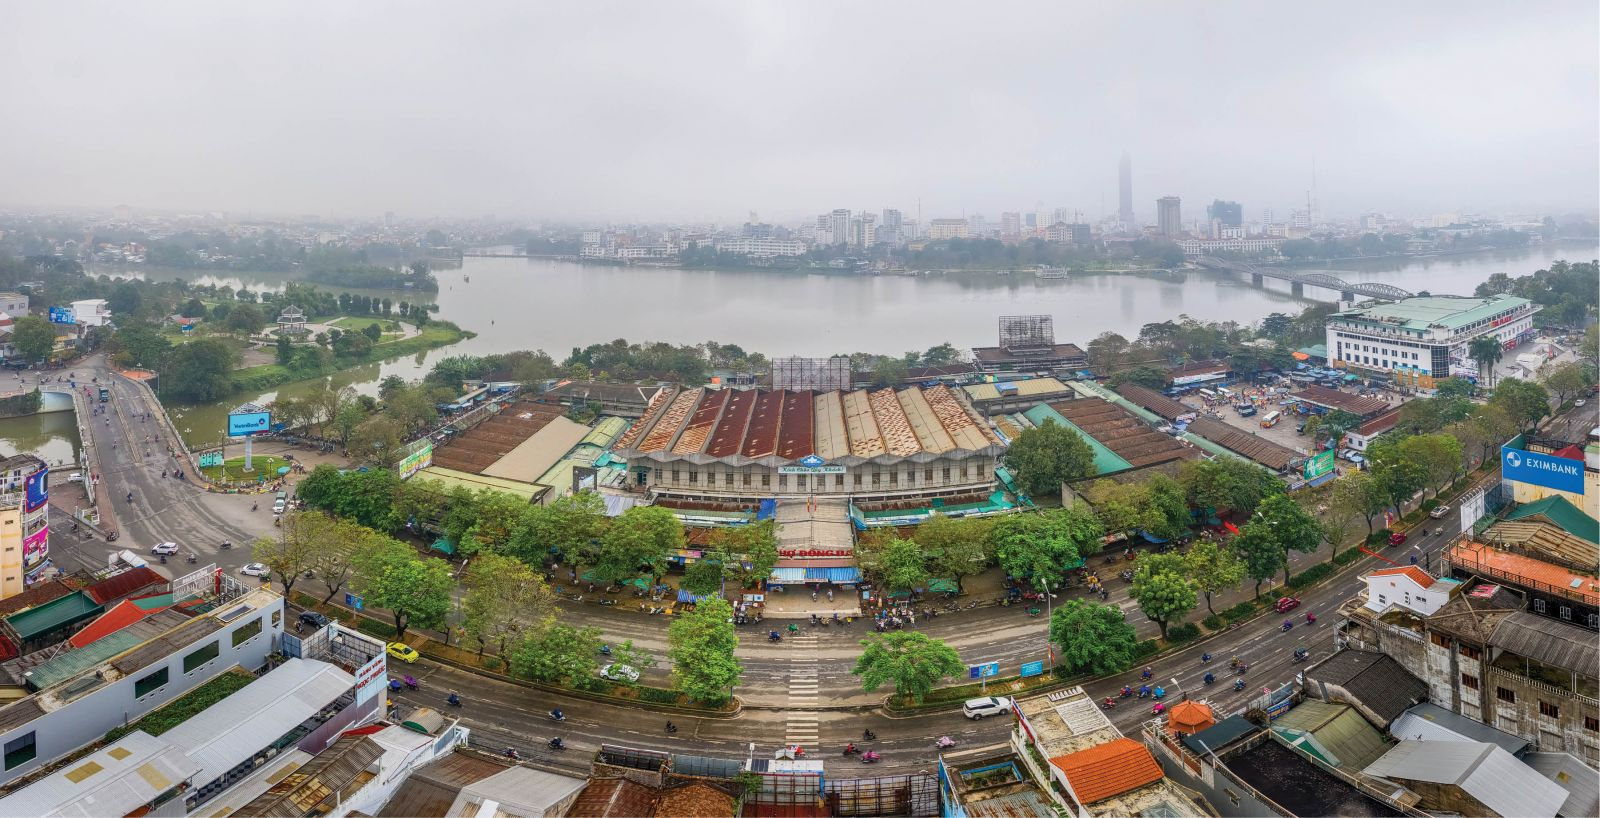 Dong Ba Market as seen from above